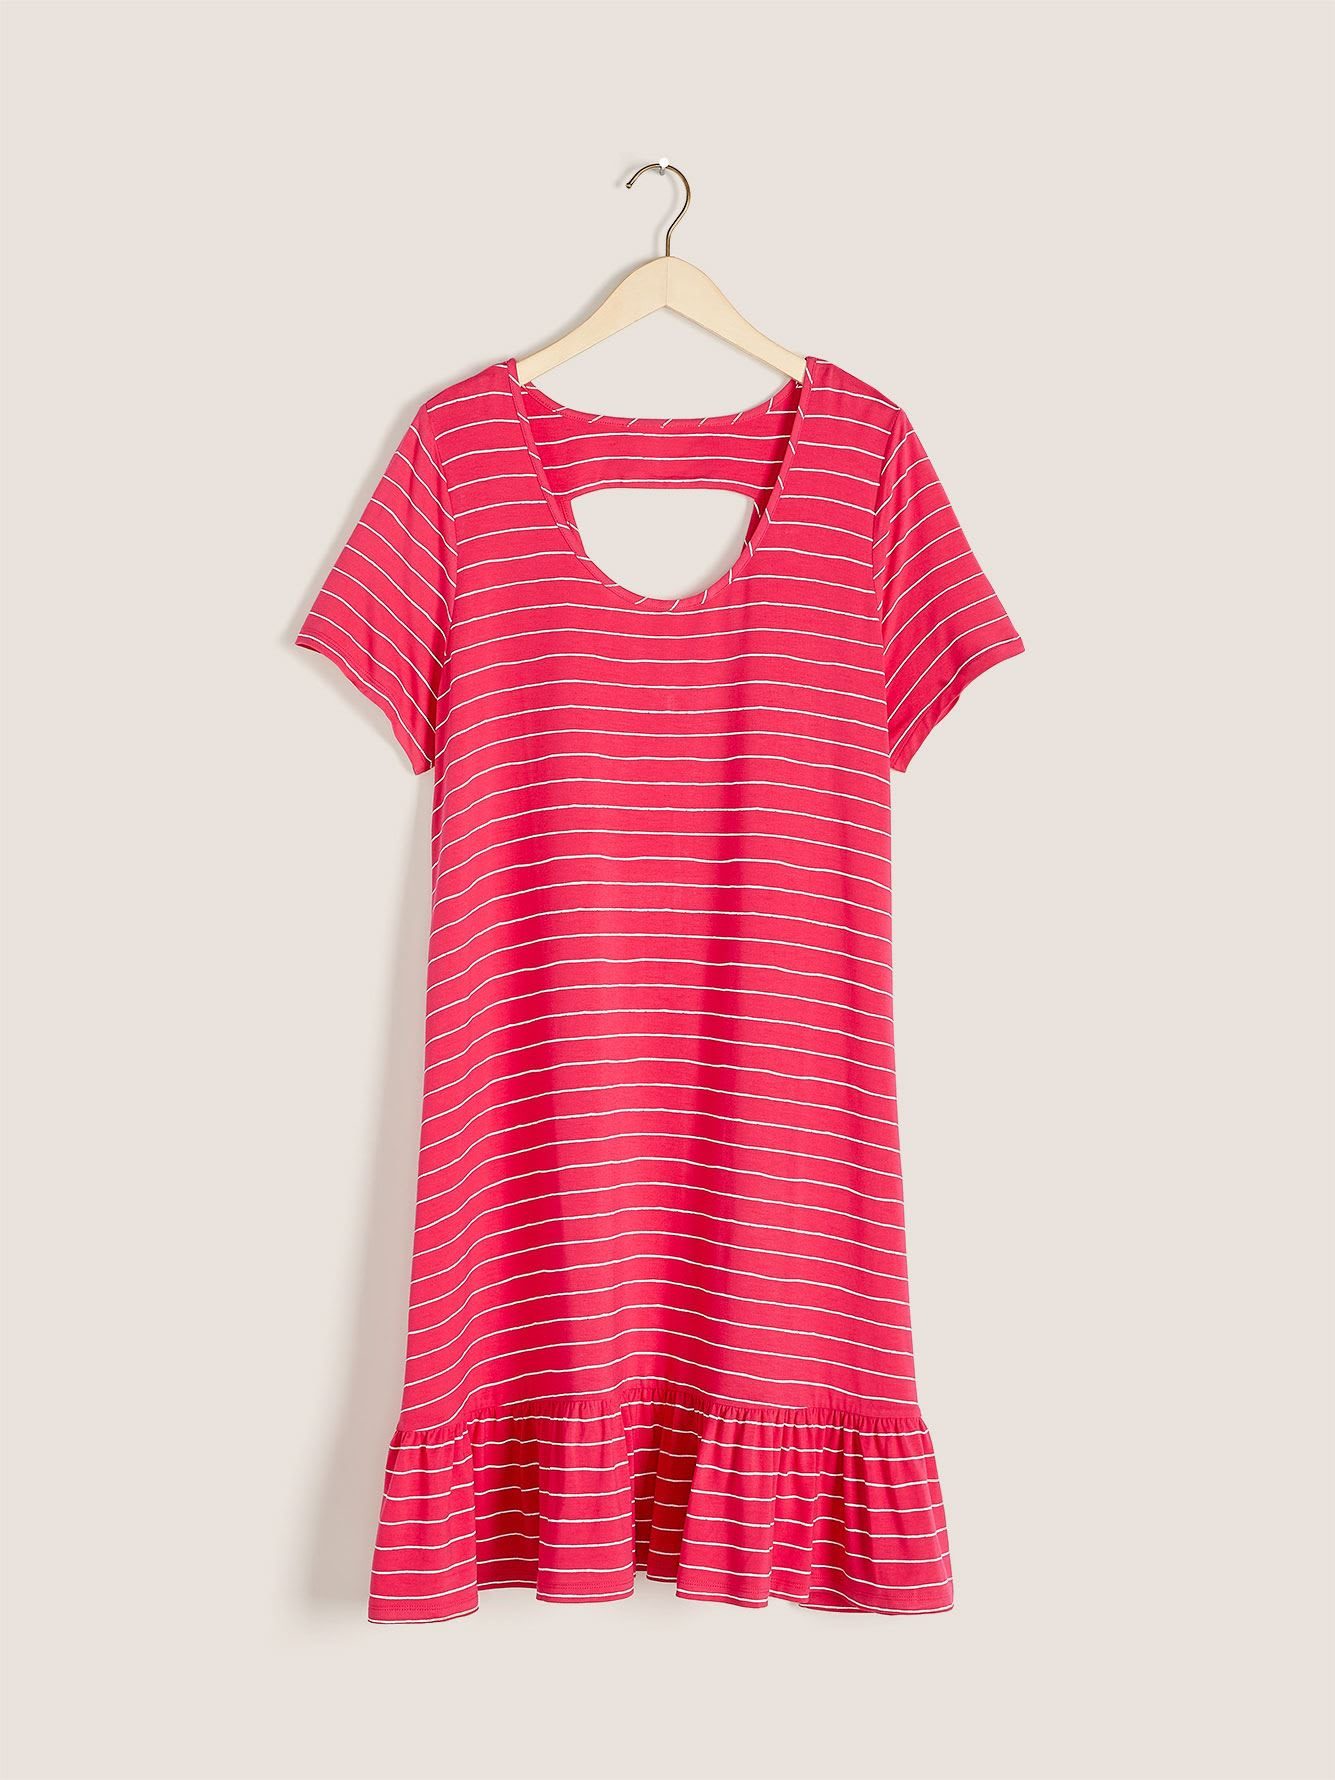 Printed Swing T-Shirt Dress - In Every Story